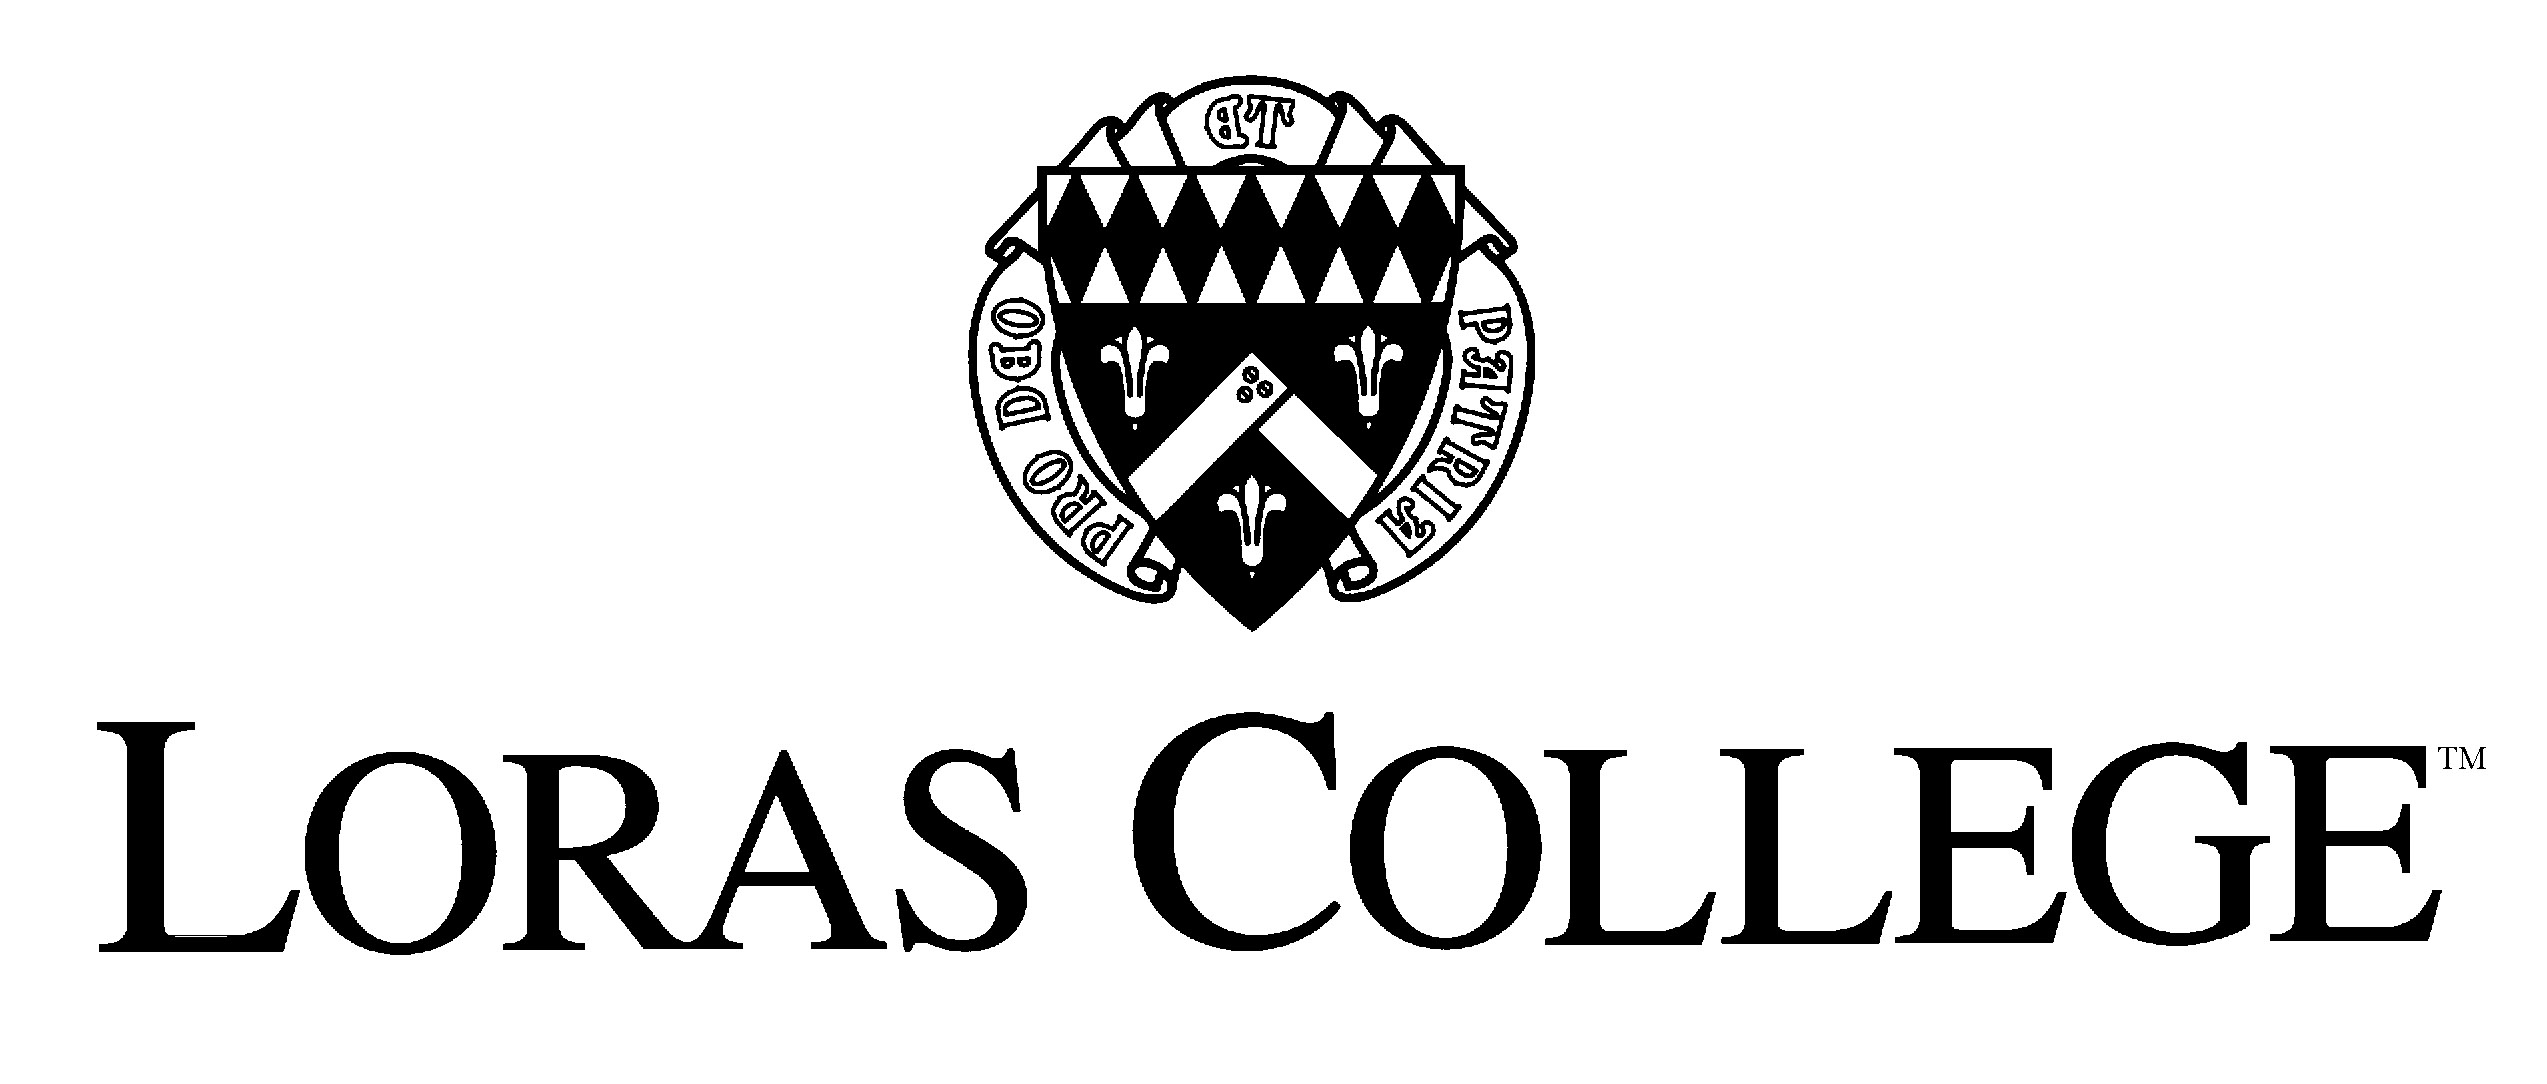 Loras College logo stacked